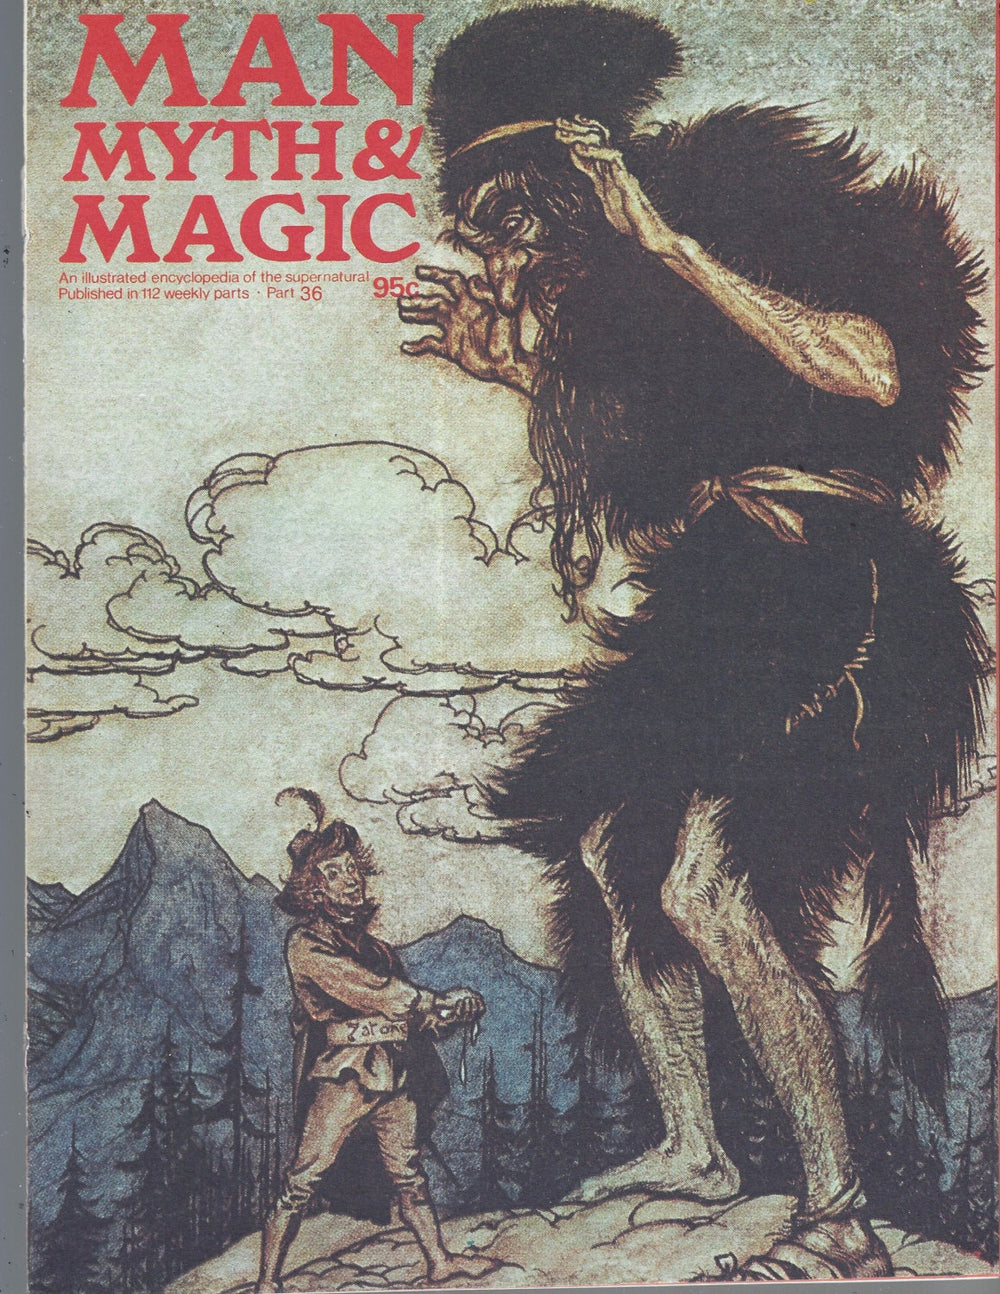 Man, Myth and Magic Part 36 Magazine by Richard Cavendish 1970